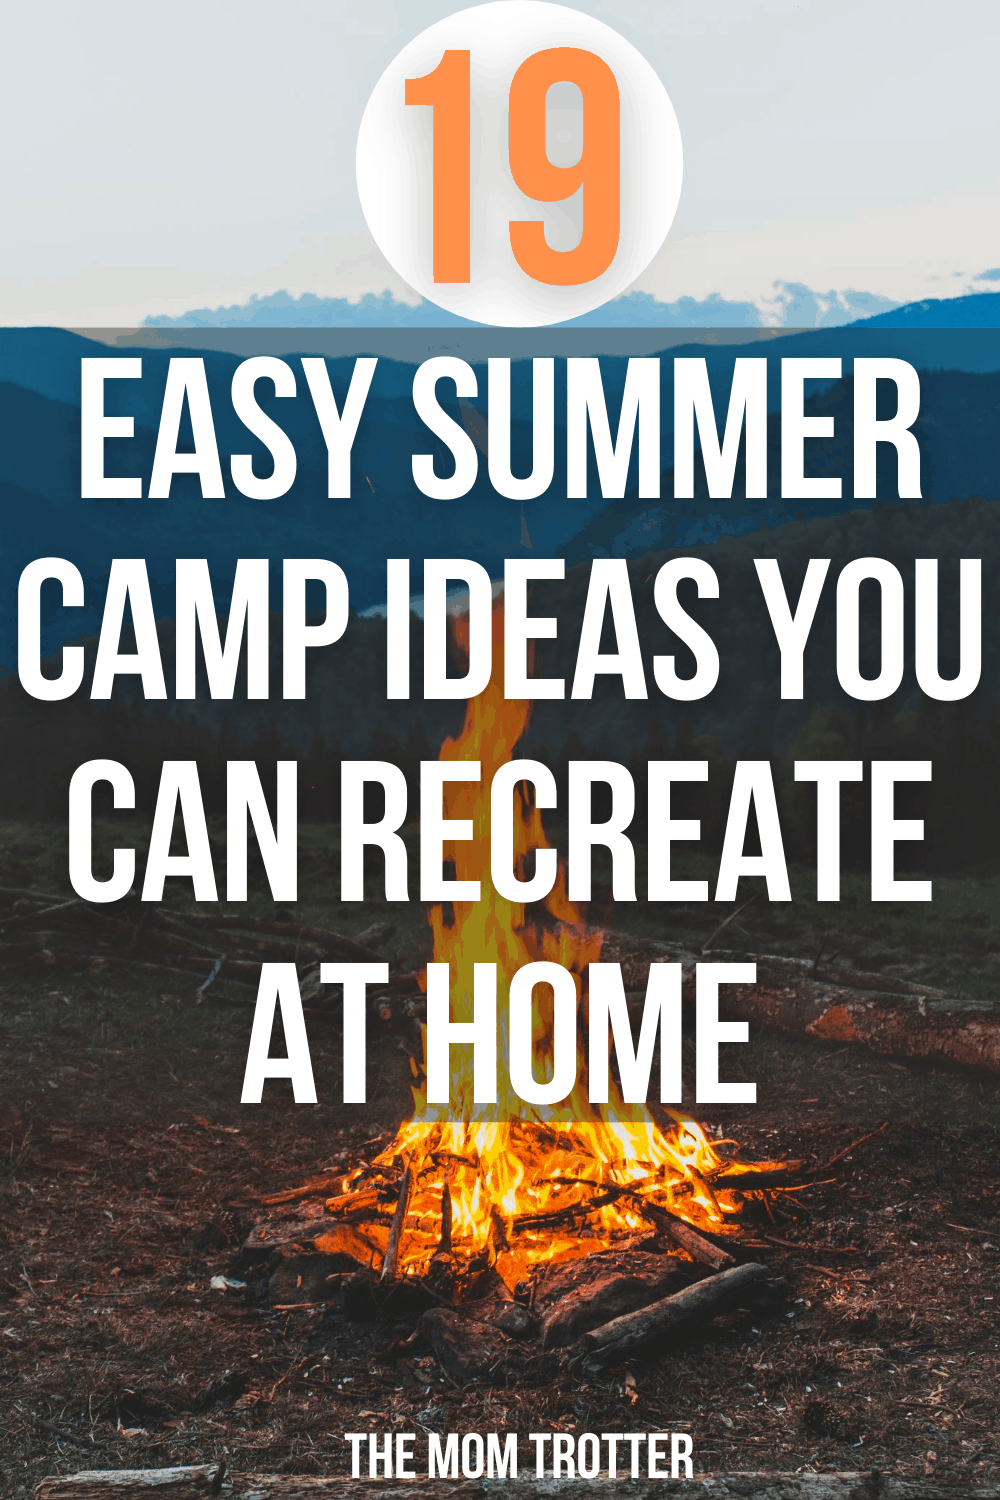 19 Easy Summer Camp Ideas You Can Recreate At Home